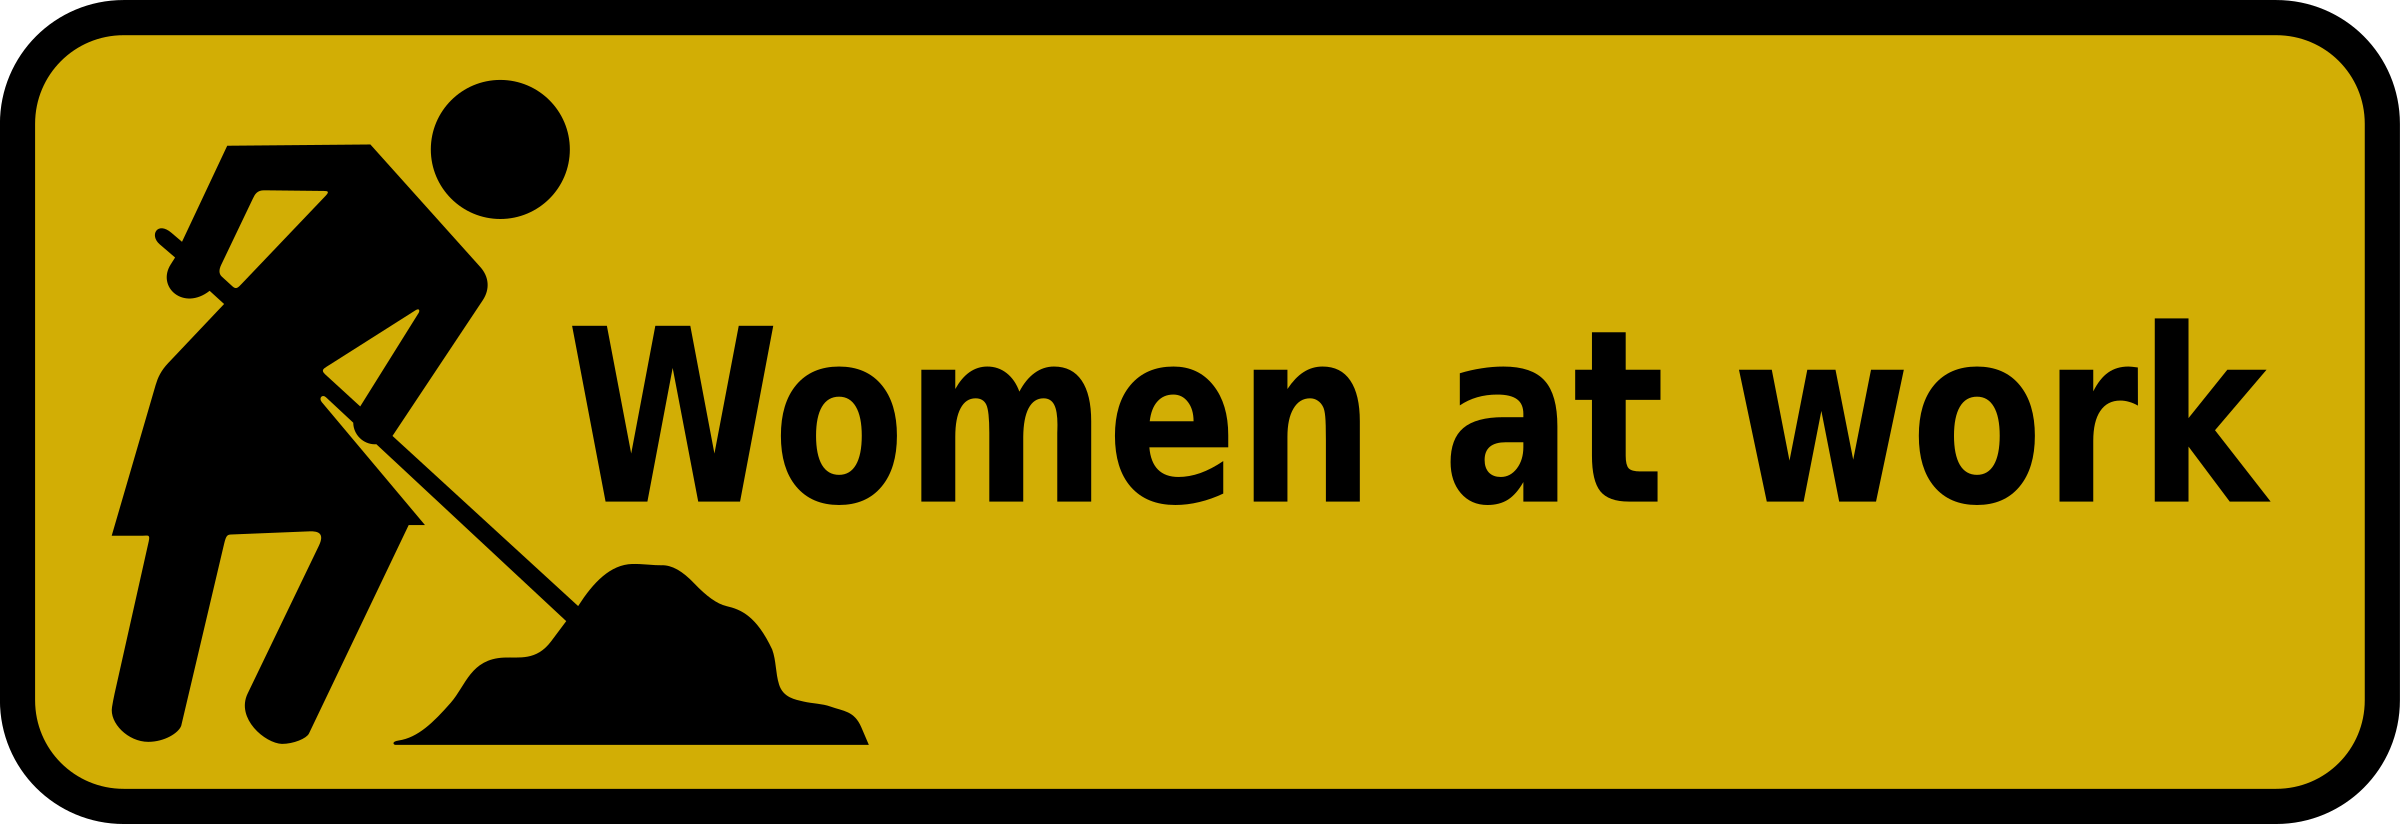 clipart sign women at work